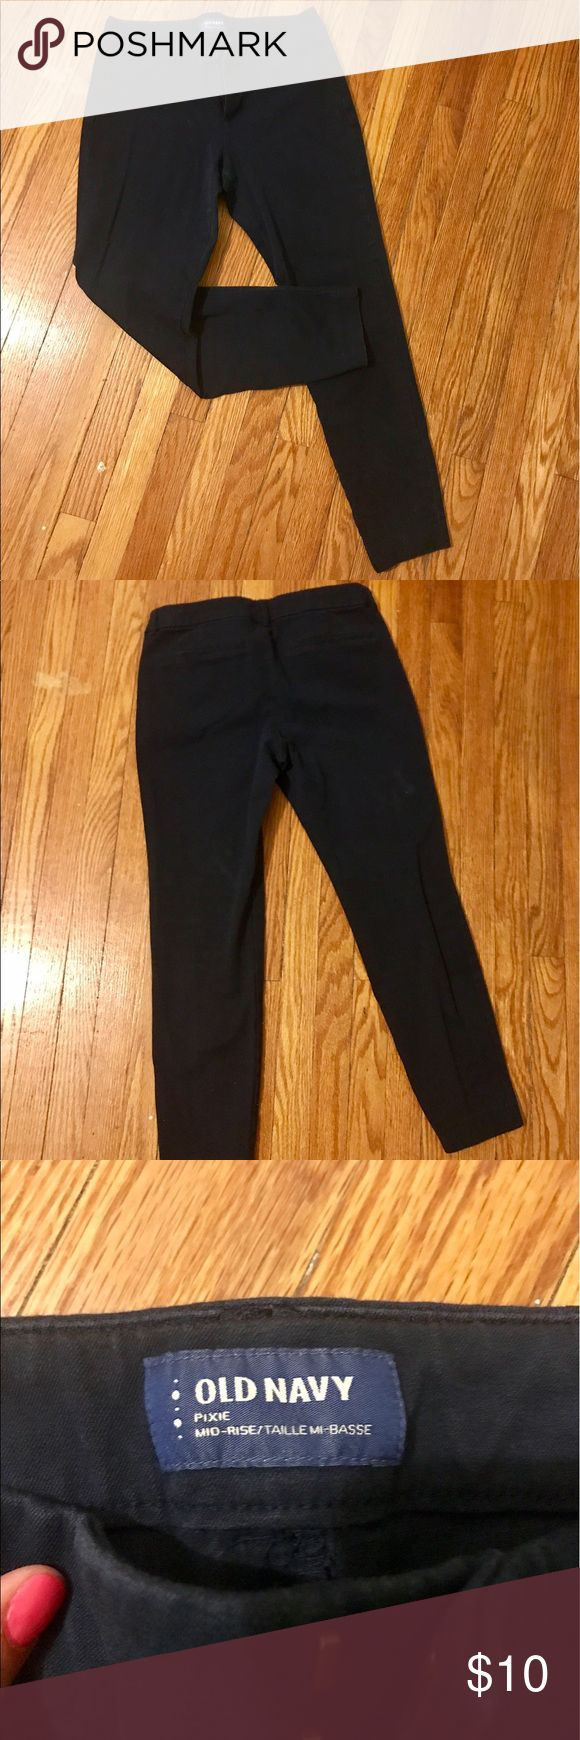 Navy blue Old Navy dress pants Navy blue, mid rise, pixie style, narrow ankle dress pant size 6 Old Navy Pants Ankle & Cropped